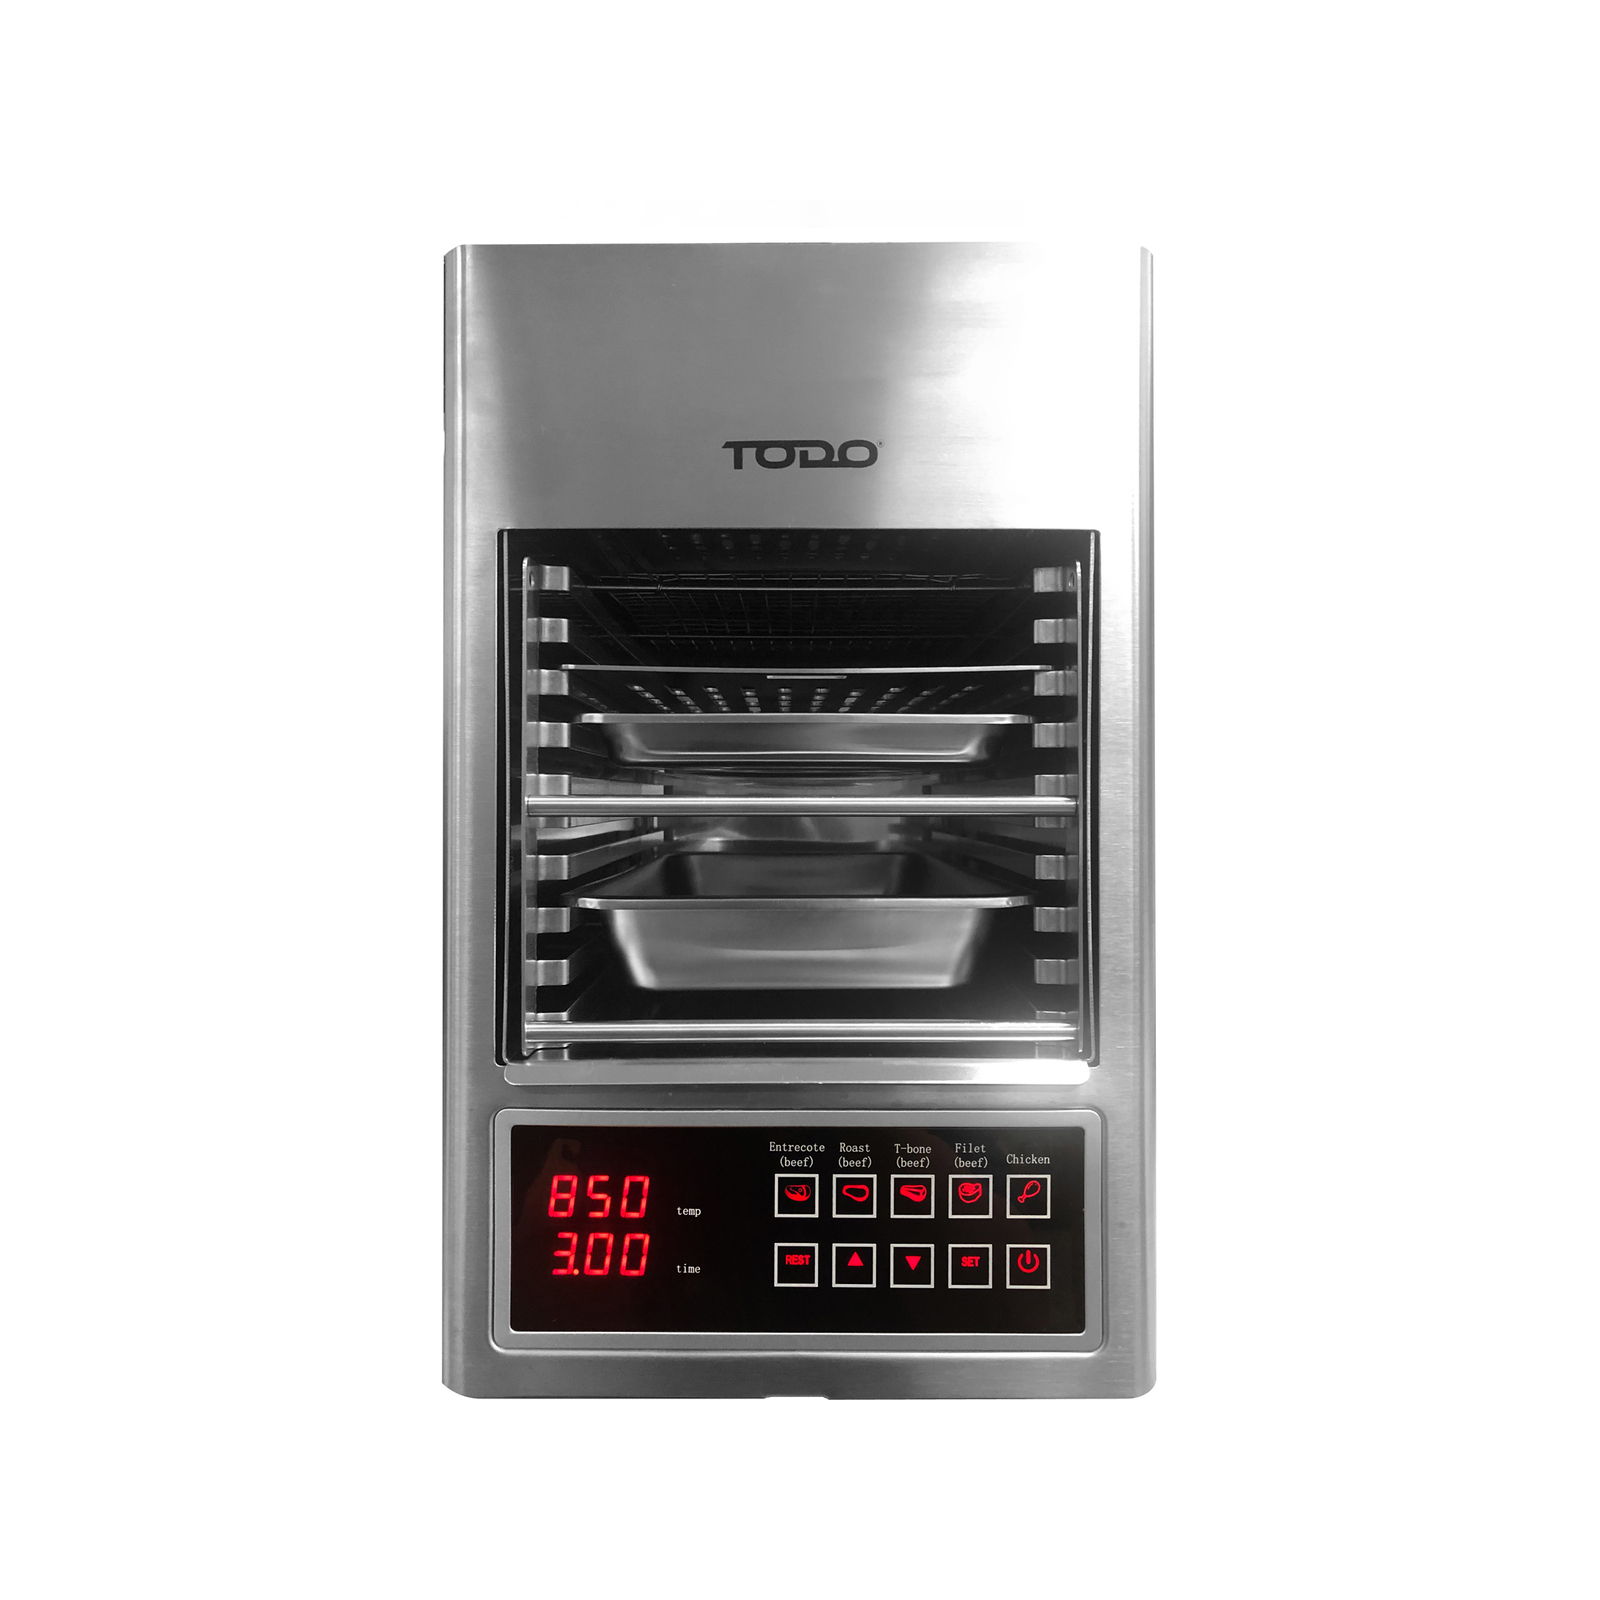 TODO 1600W Oven Grill Beef Maker 11L Capacity